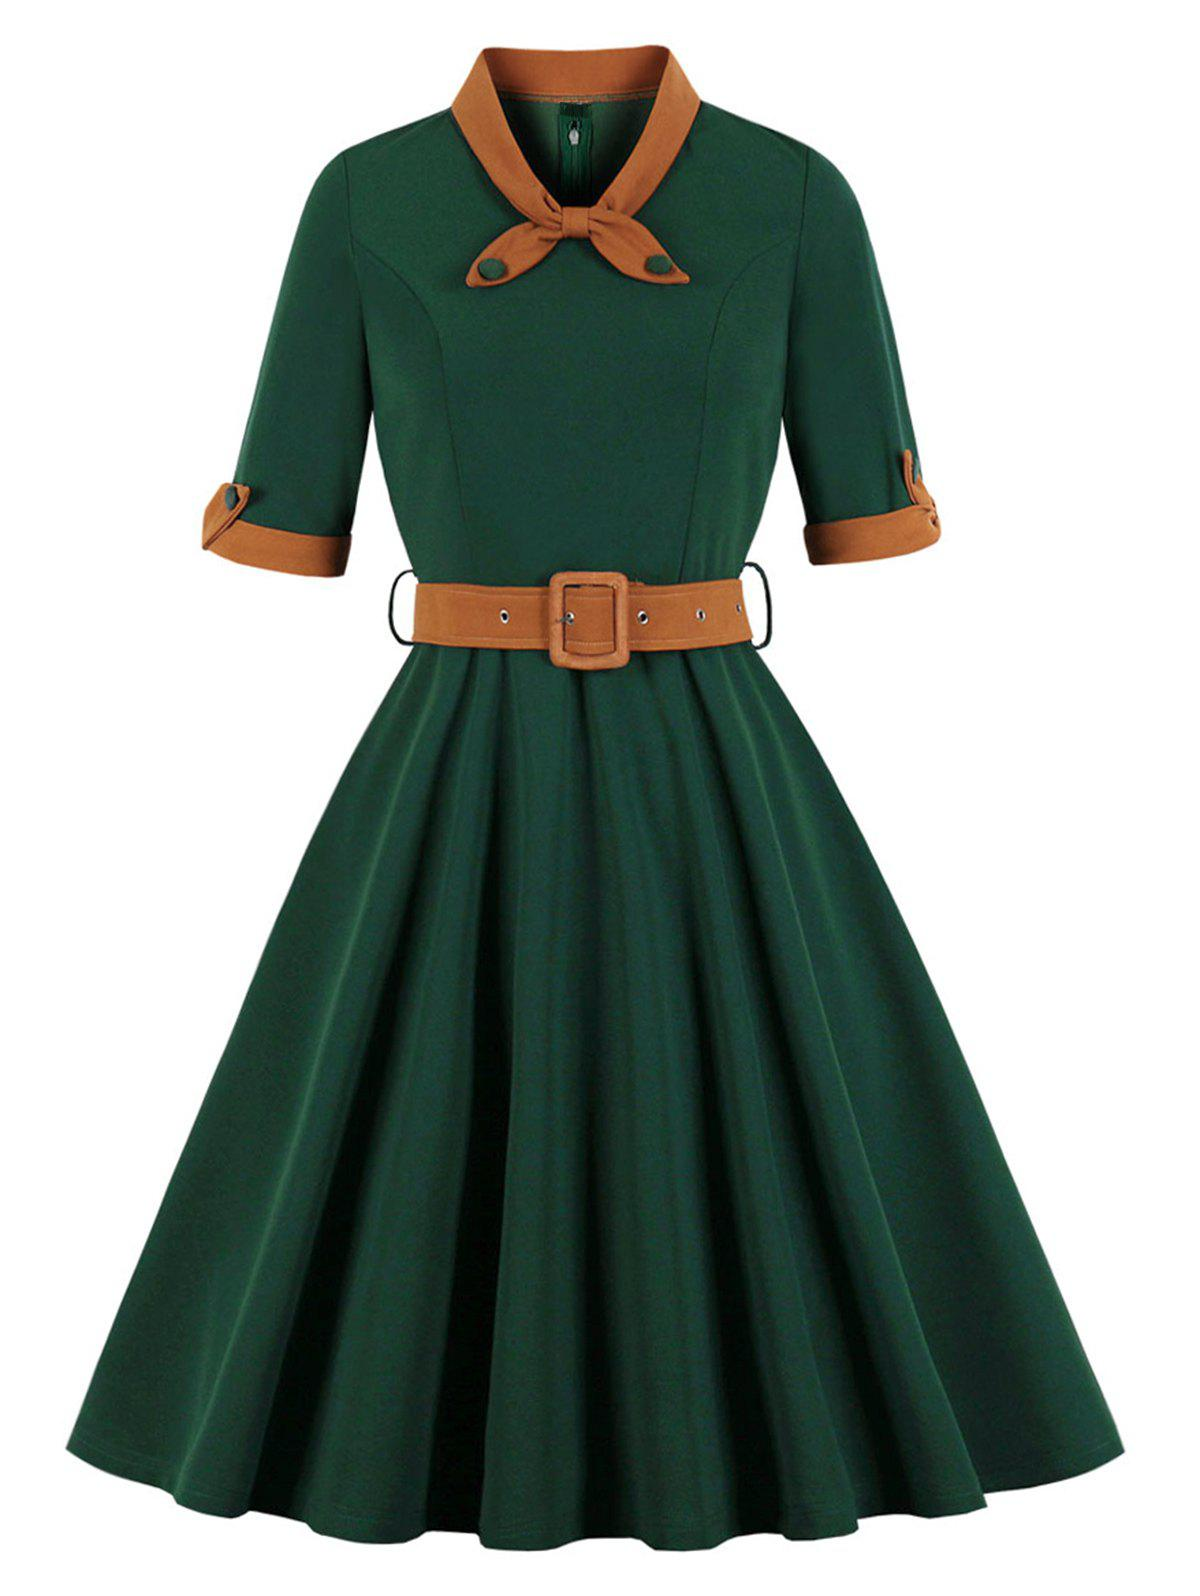 Buy Bowknot Vintage Belted Fit and Flare Dress